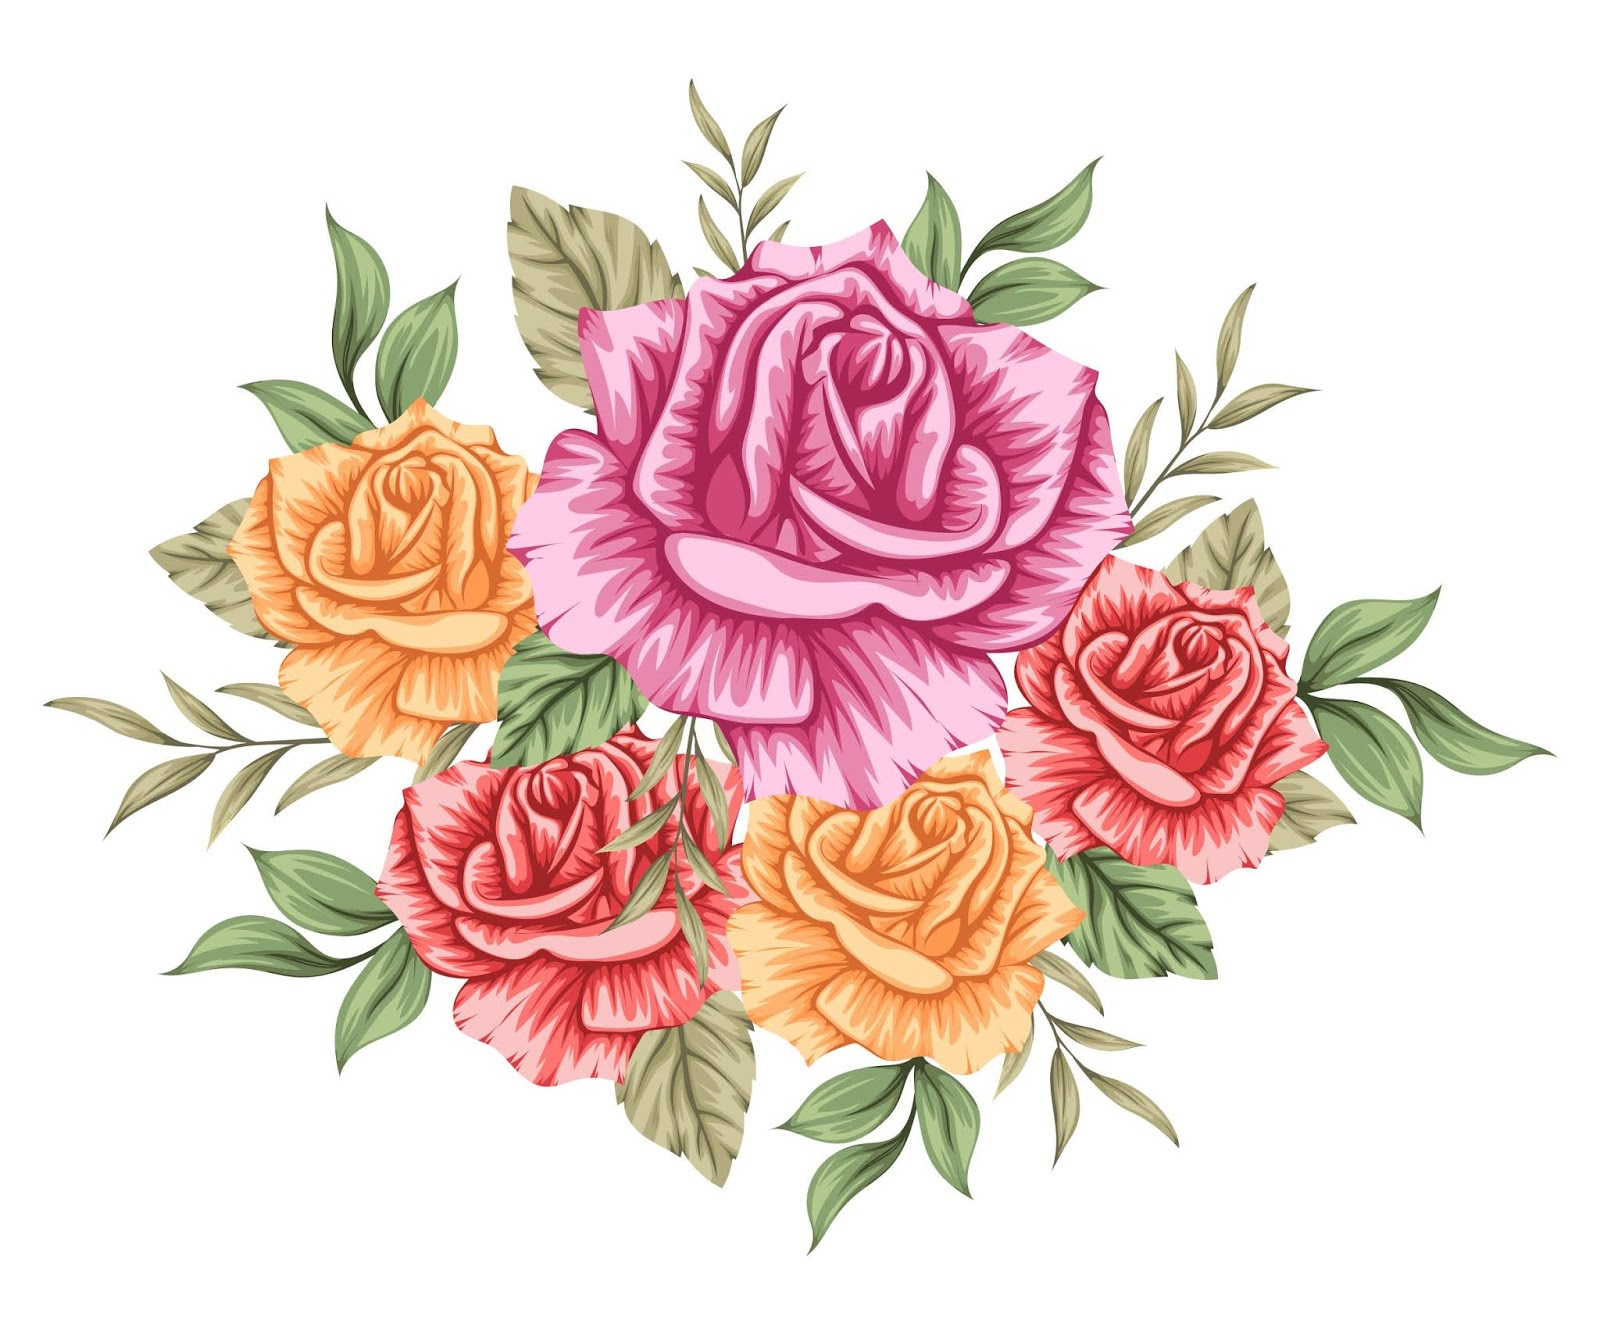 Beautiful Colourful Bouquet Flowers Free Download Vector CDR, AI, EPS and PNG Formats